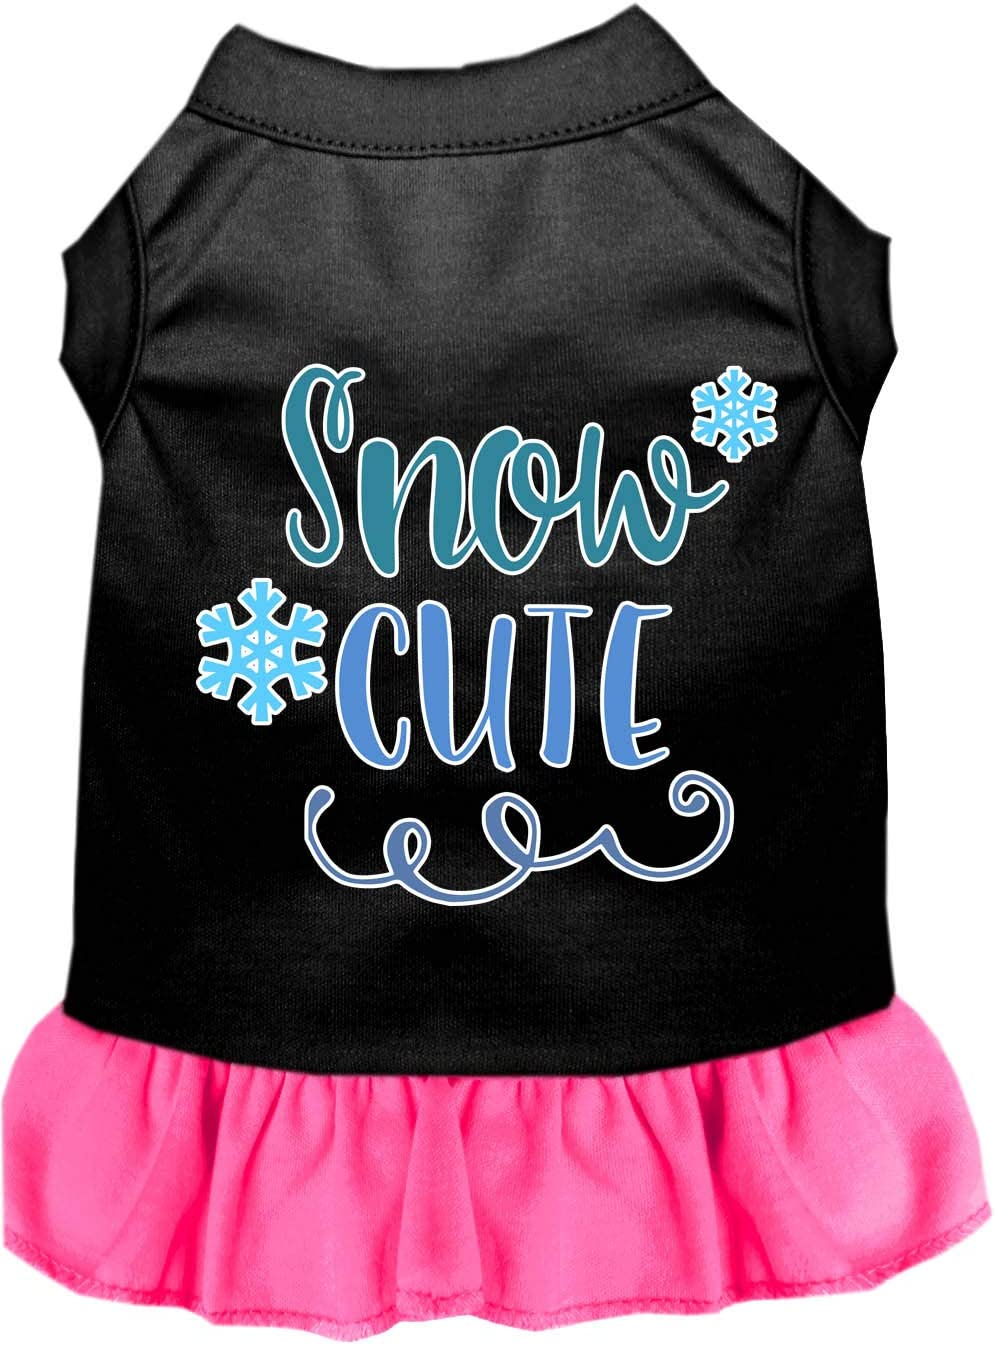 Mirage Pet Product Snow Cute Screen Dog Dress Print B Black with 67% Cheap super special price OFF of fixed price